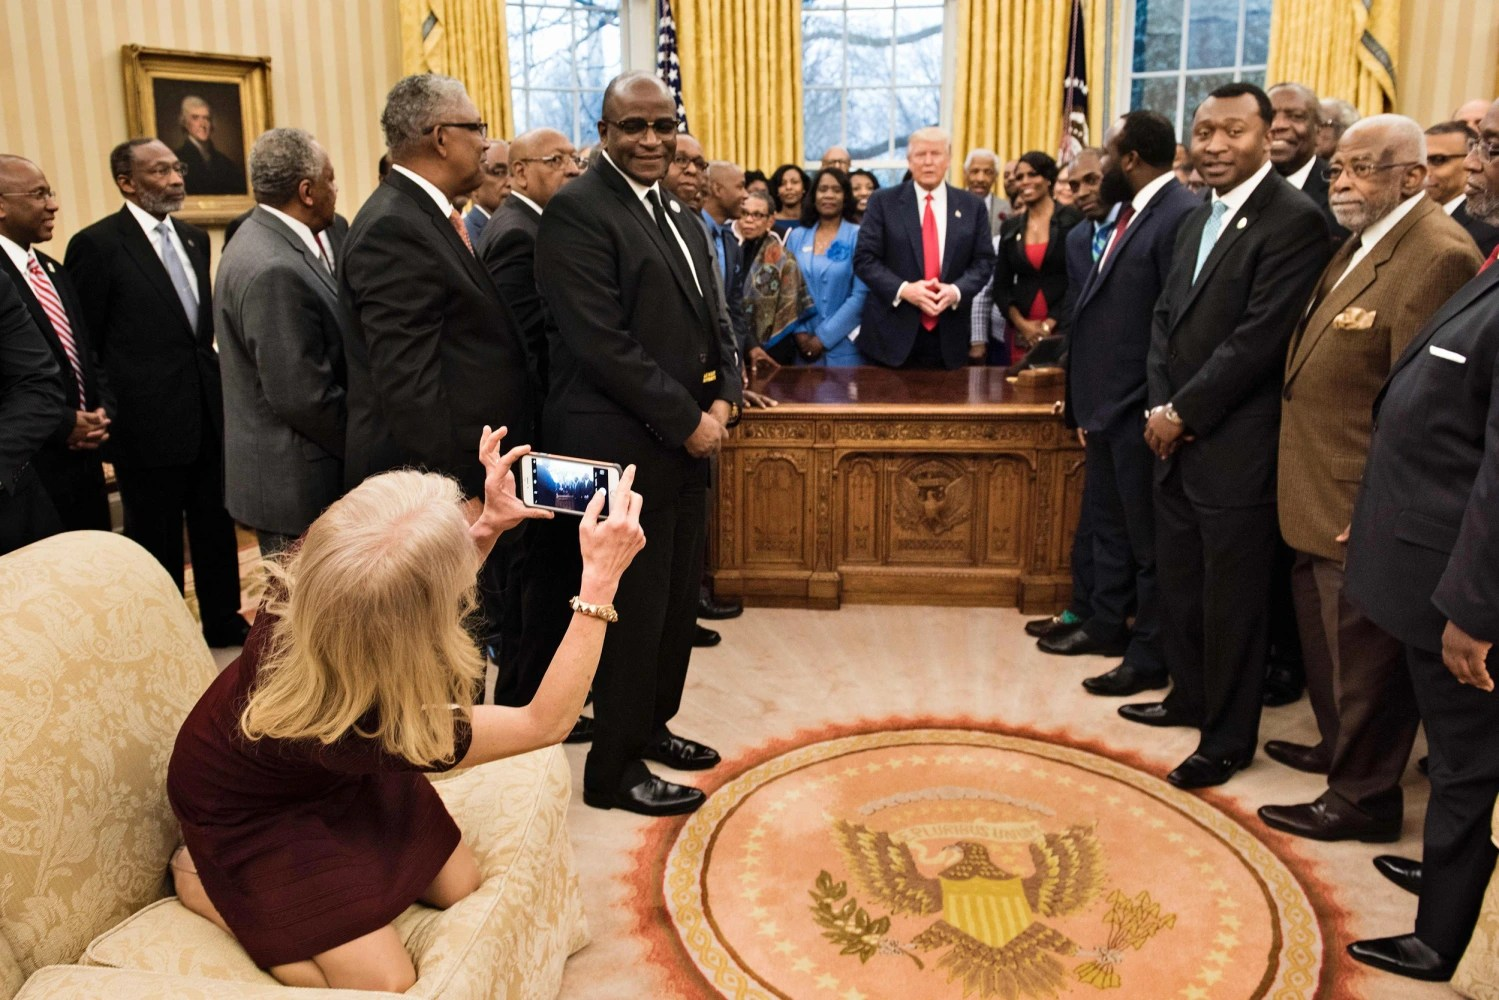 Image result for legs oval office kelly ann conway